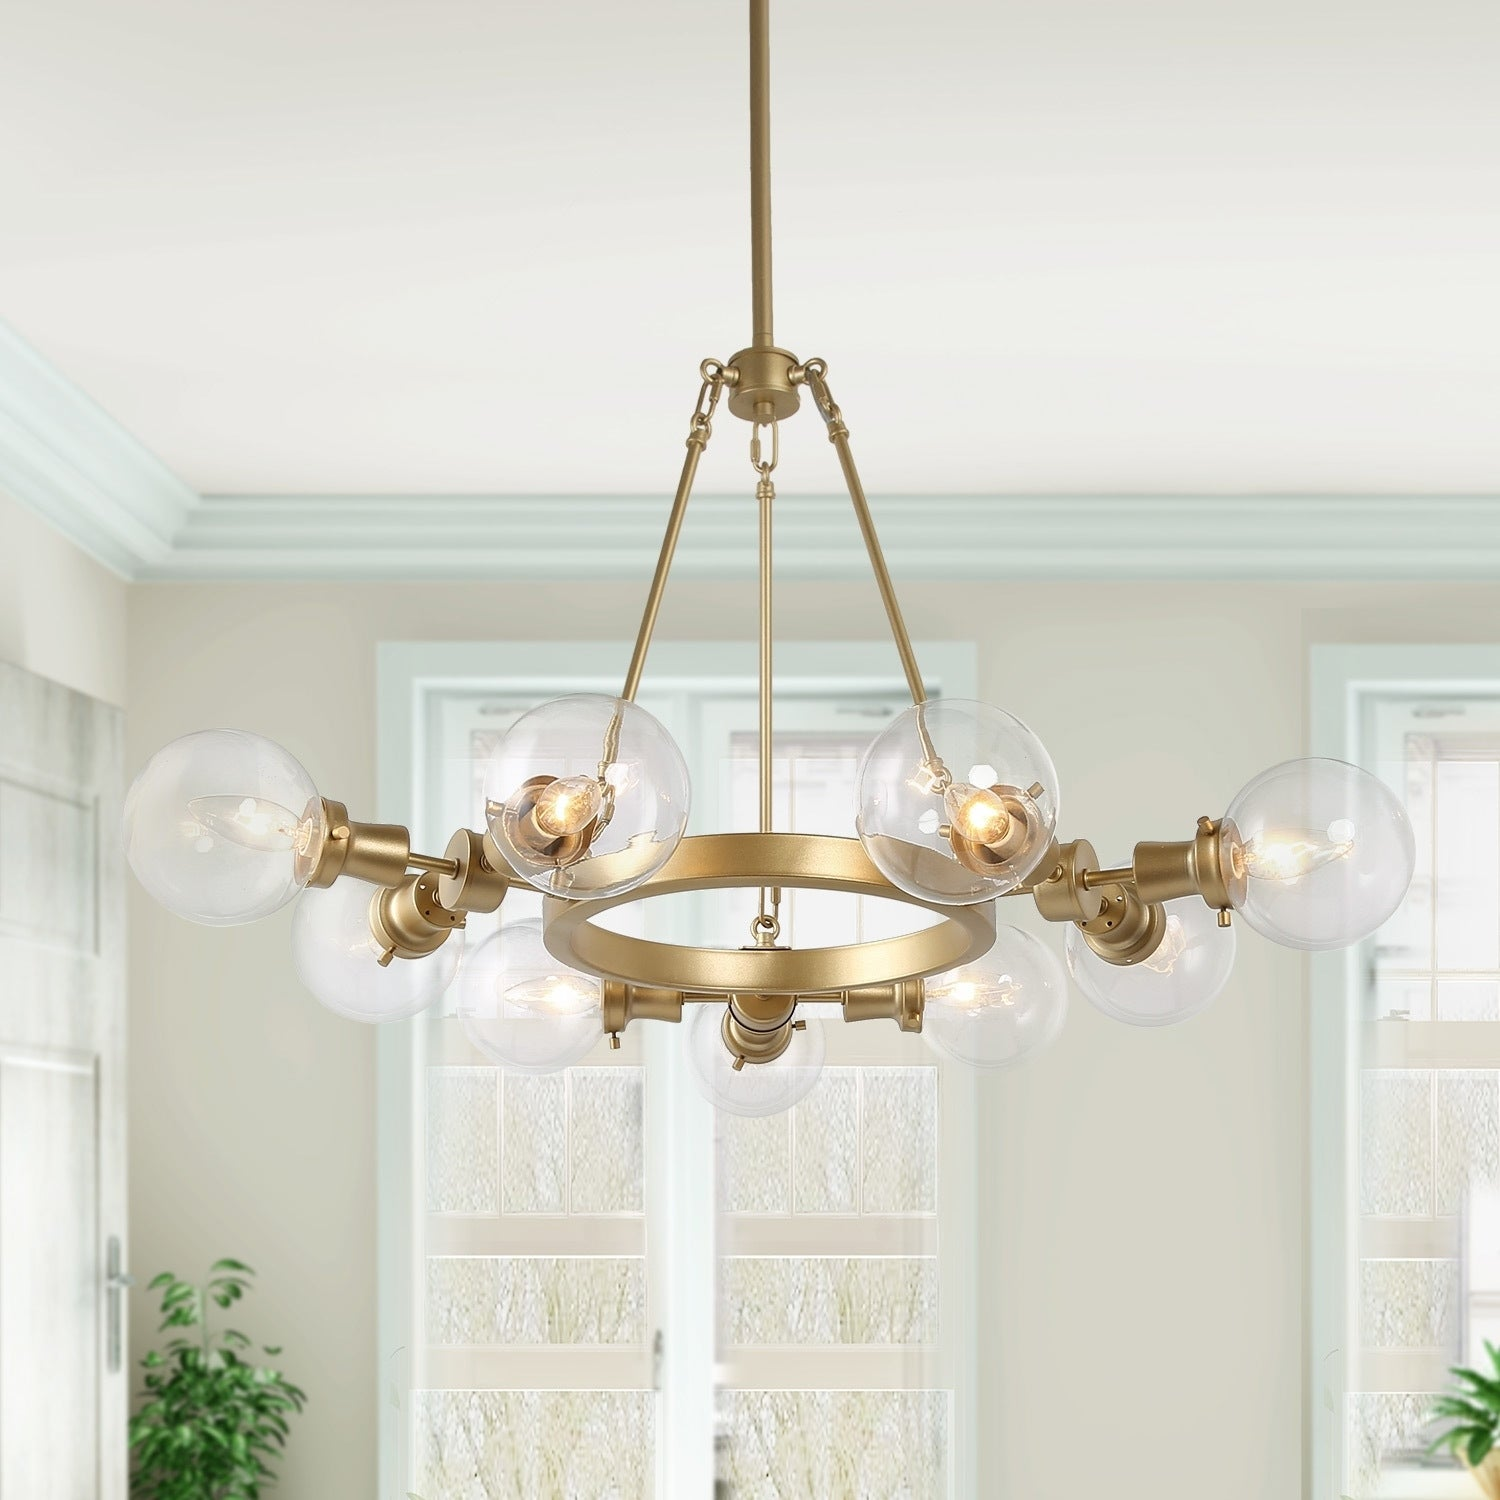 Glam 9 Light Gold Wagon Wheel Chandelier With Glass Globe Shades Overstock 30684523